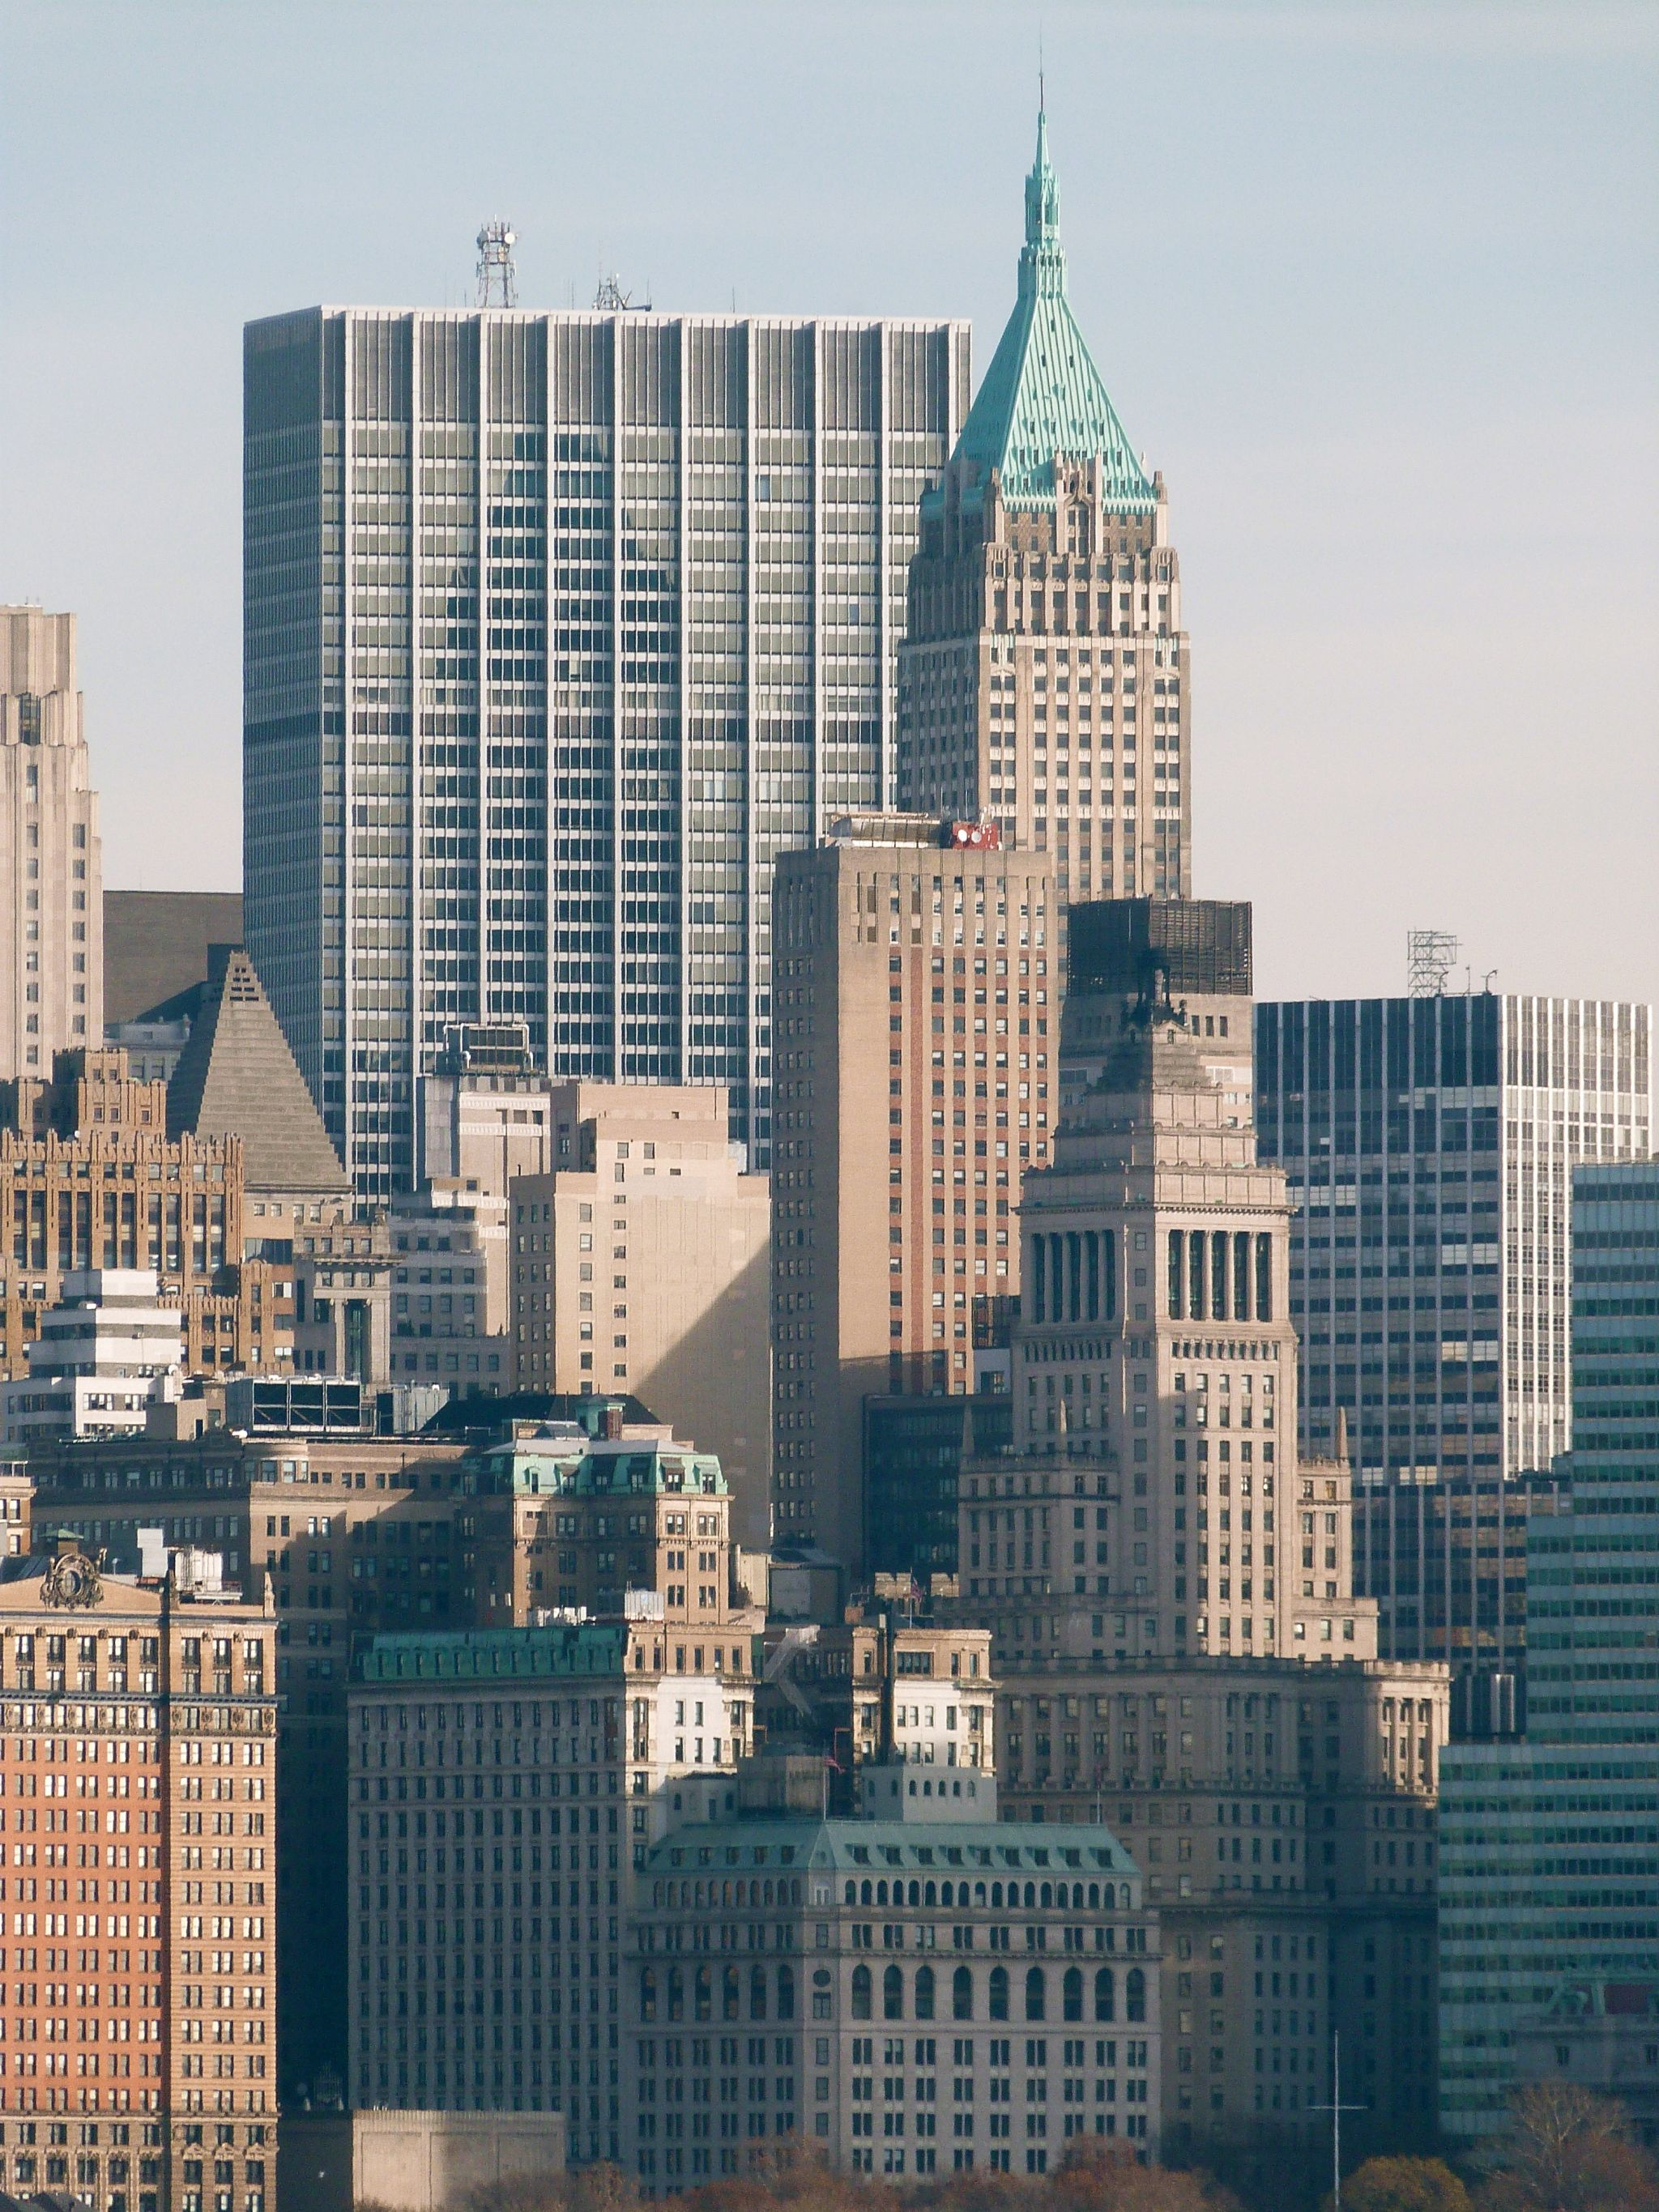 Sights to see in New York City